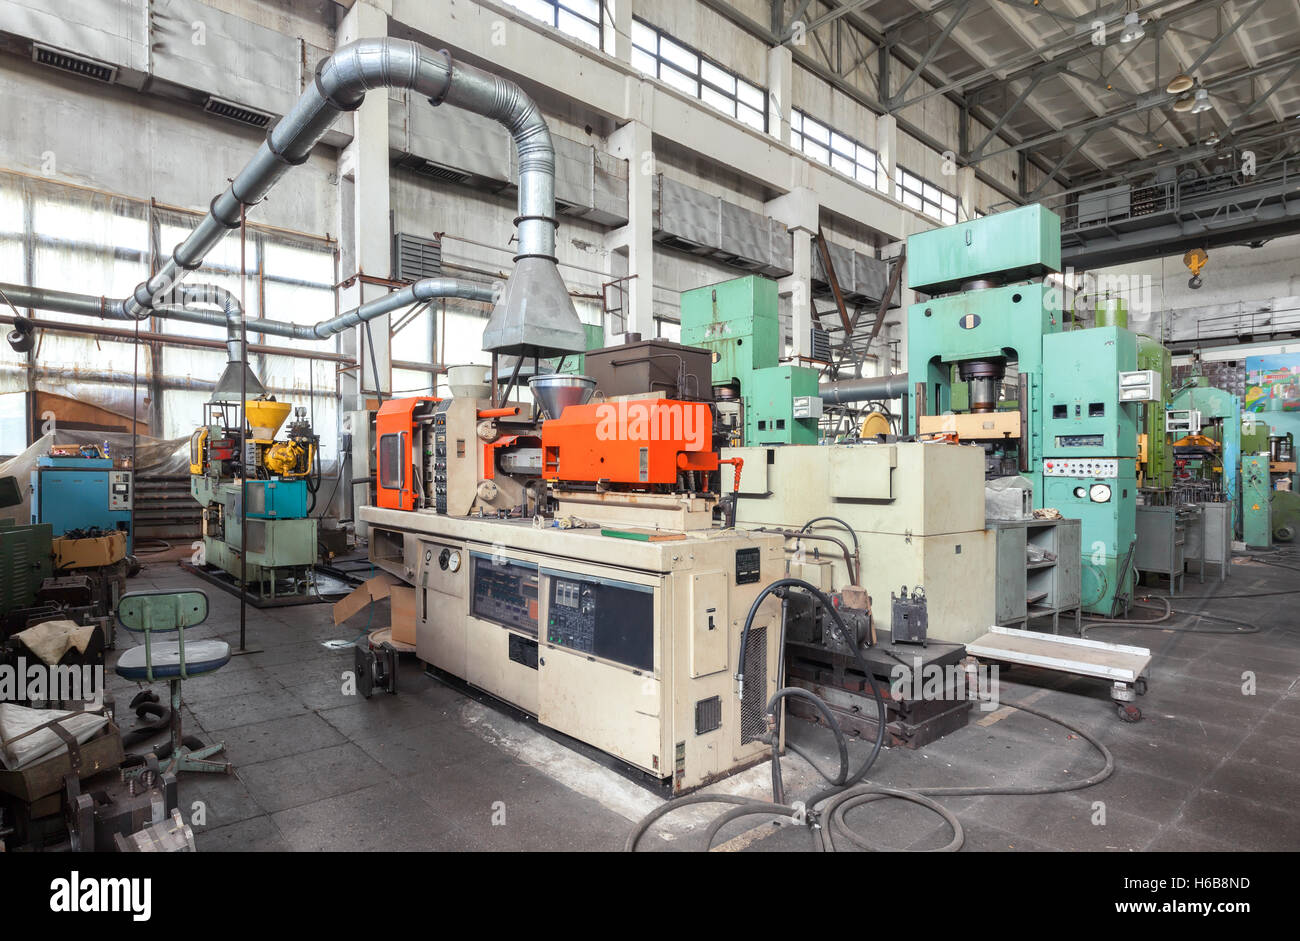 Machine-building plant. Shop with machines for production of plastic parts. Injection molding thermoplastic machine - Stock Image